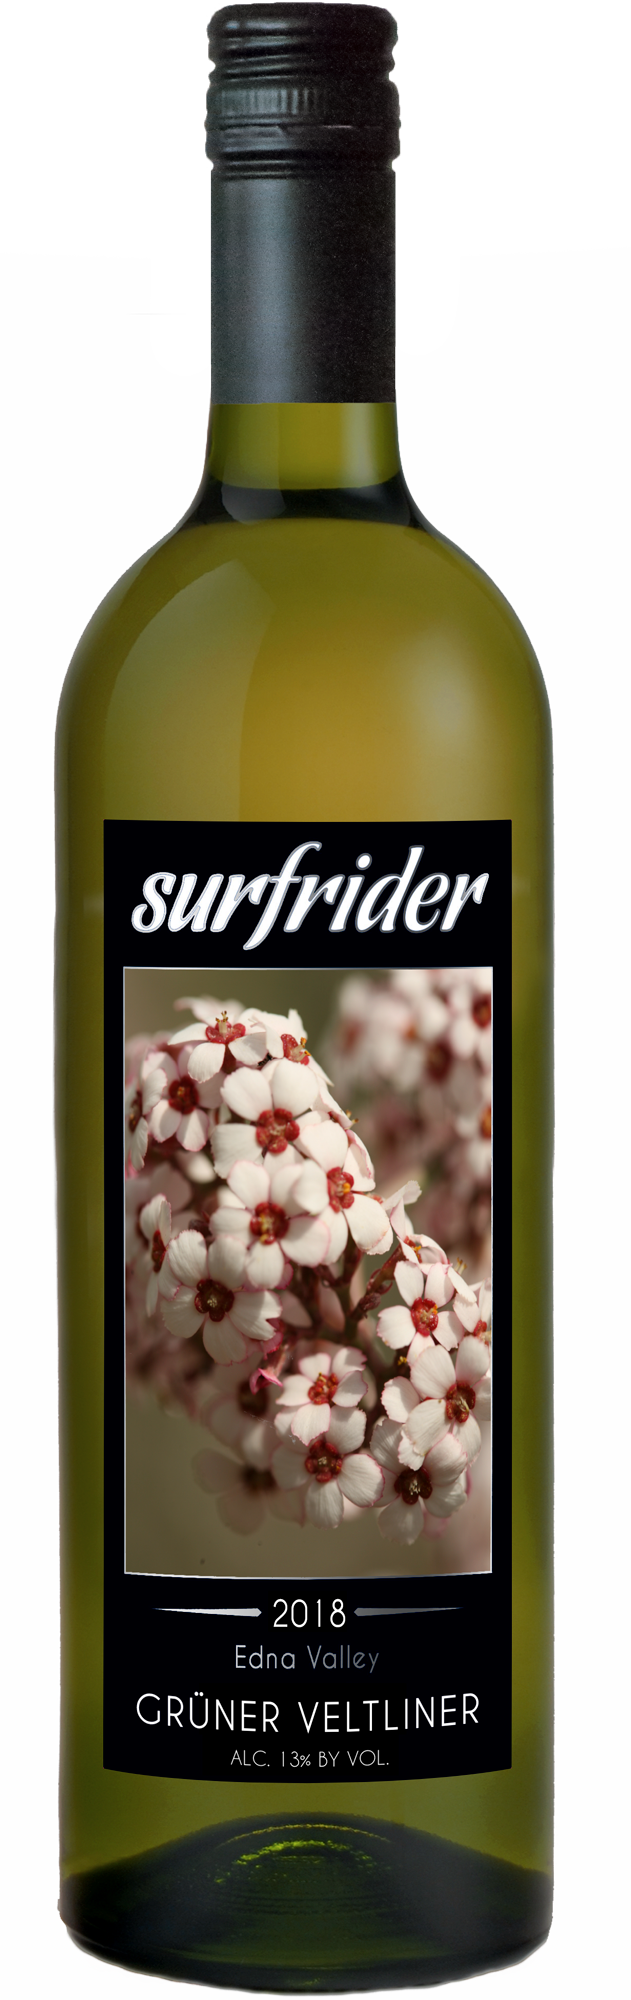 Product Image for 2018 Surfrider Gruner Veltliner